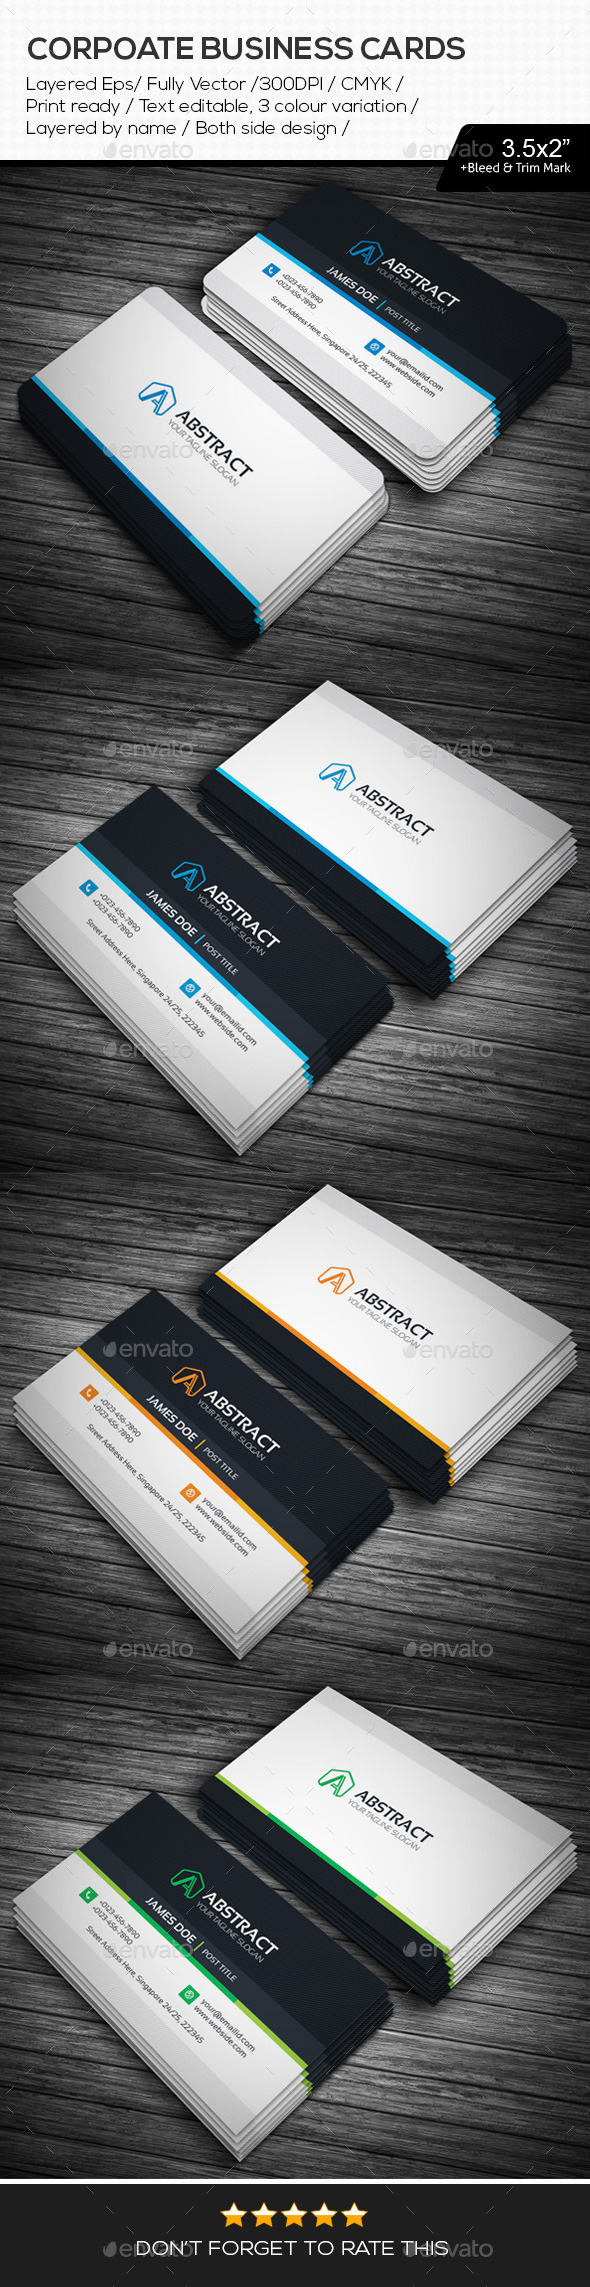 GraphicRiver Abstract Corporate Business Cards 11112901